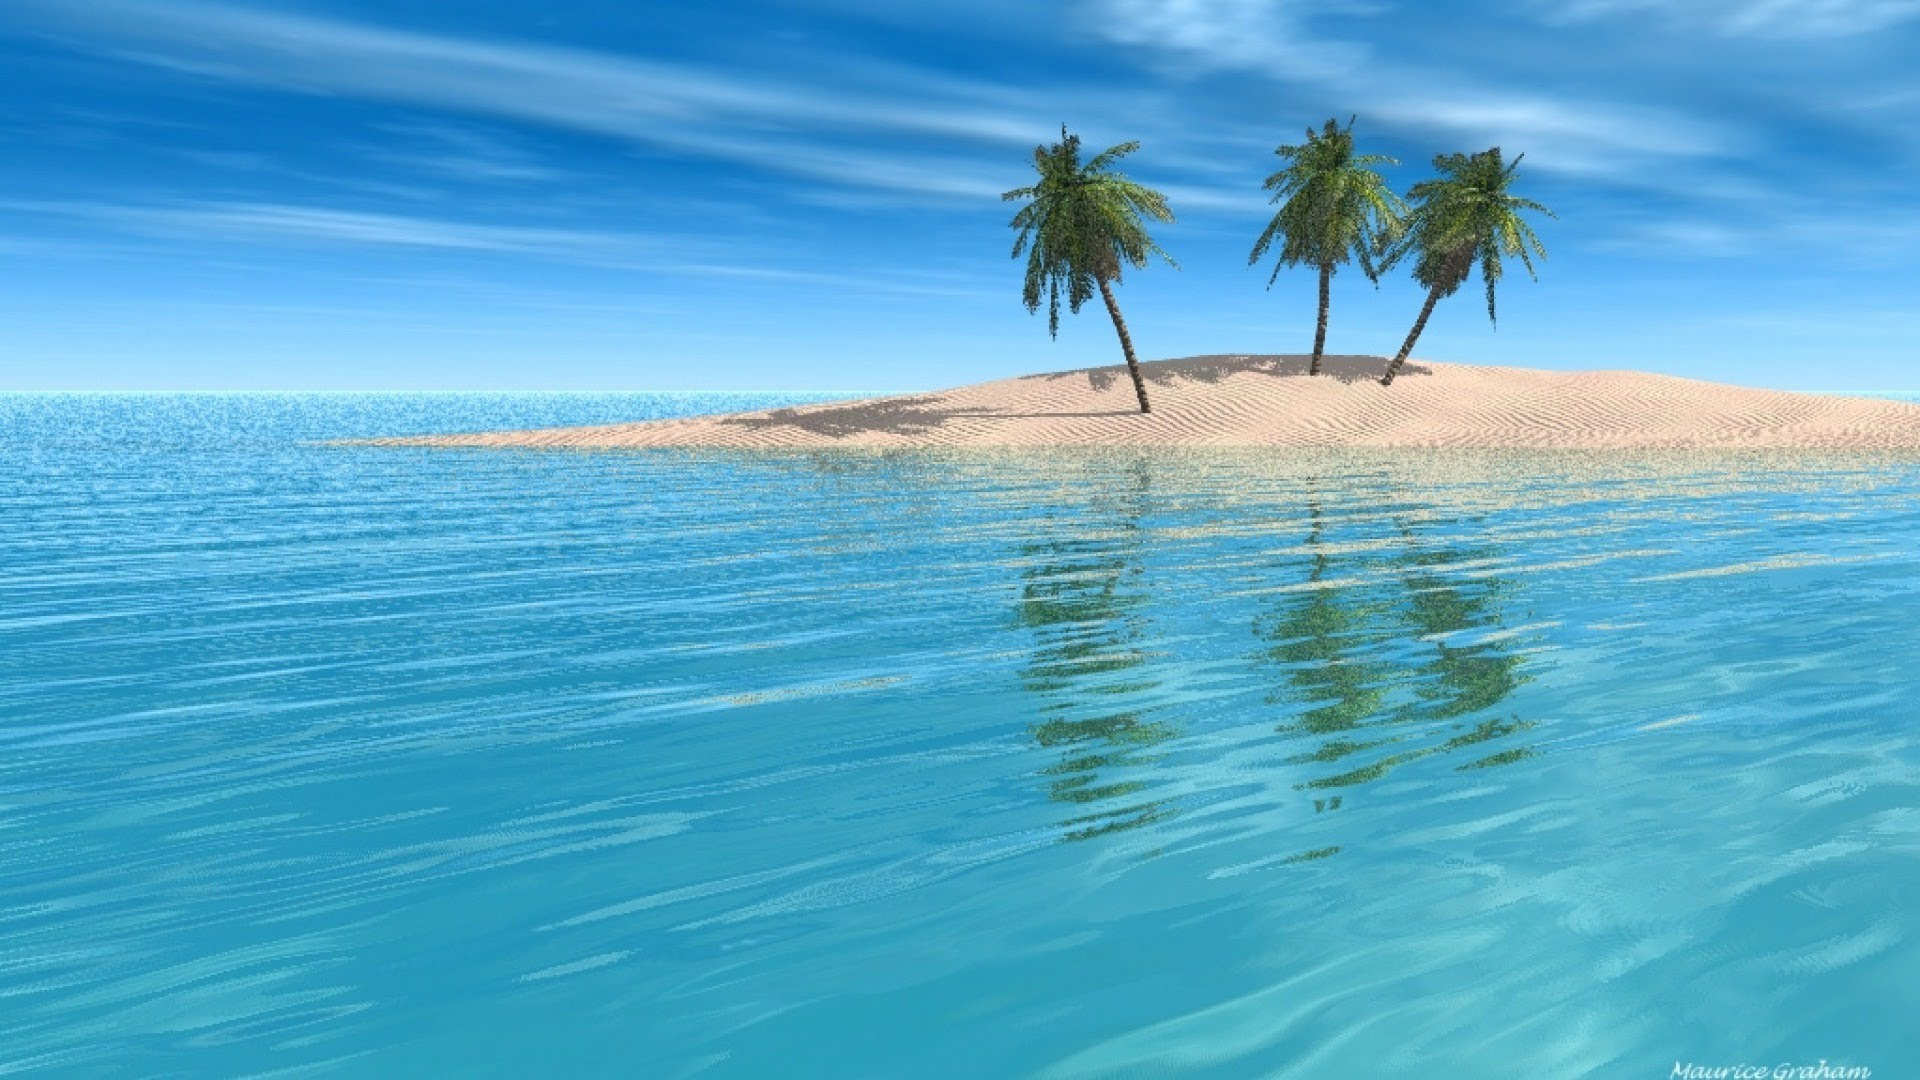 Amazing Island Pictures & Backgrounds